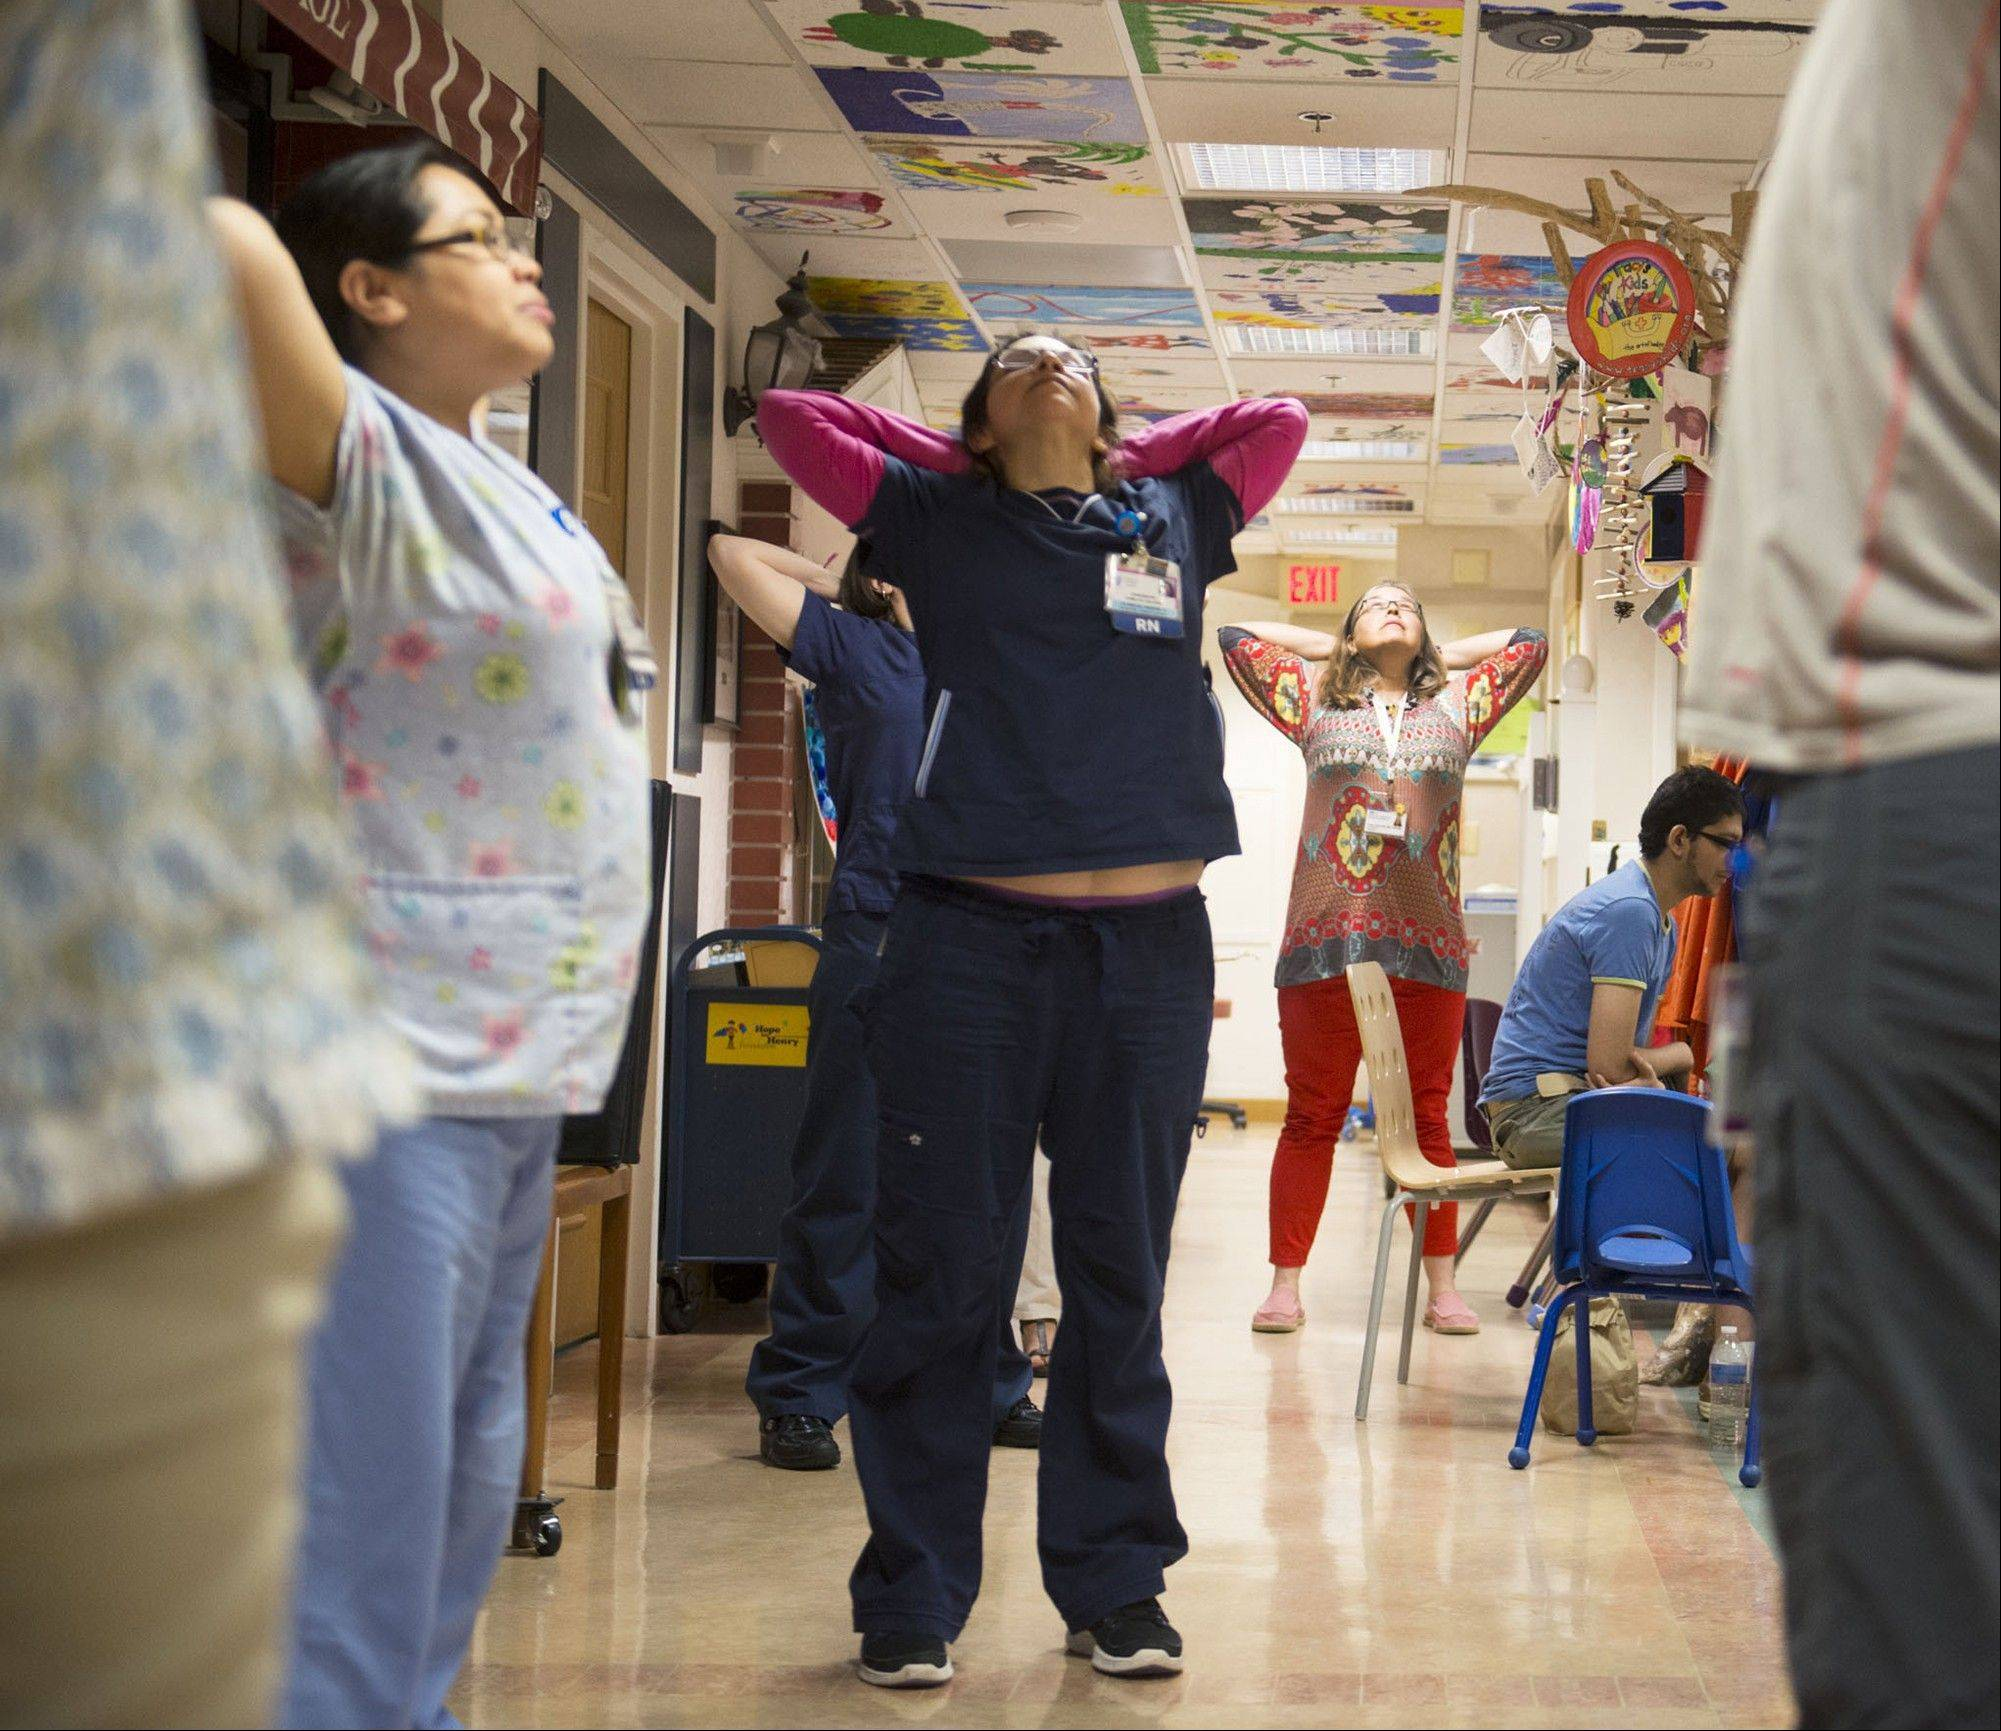 Nurses receive some stretching exercises from Daniel Burkholder, right, inside the Georgetown Lombardi Comprehensive Cancer Center. Medical institutions are implementing programs to help both patients and staffers learn to cope with stress and promote staff morale.